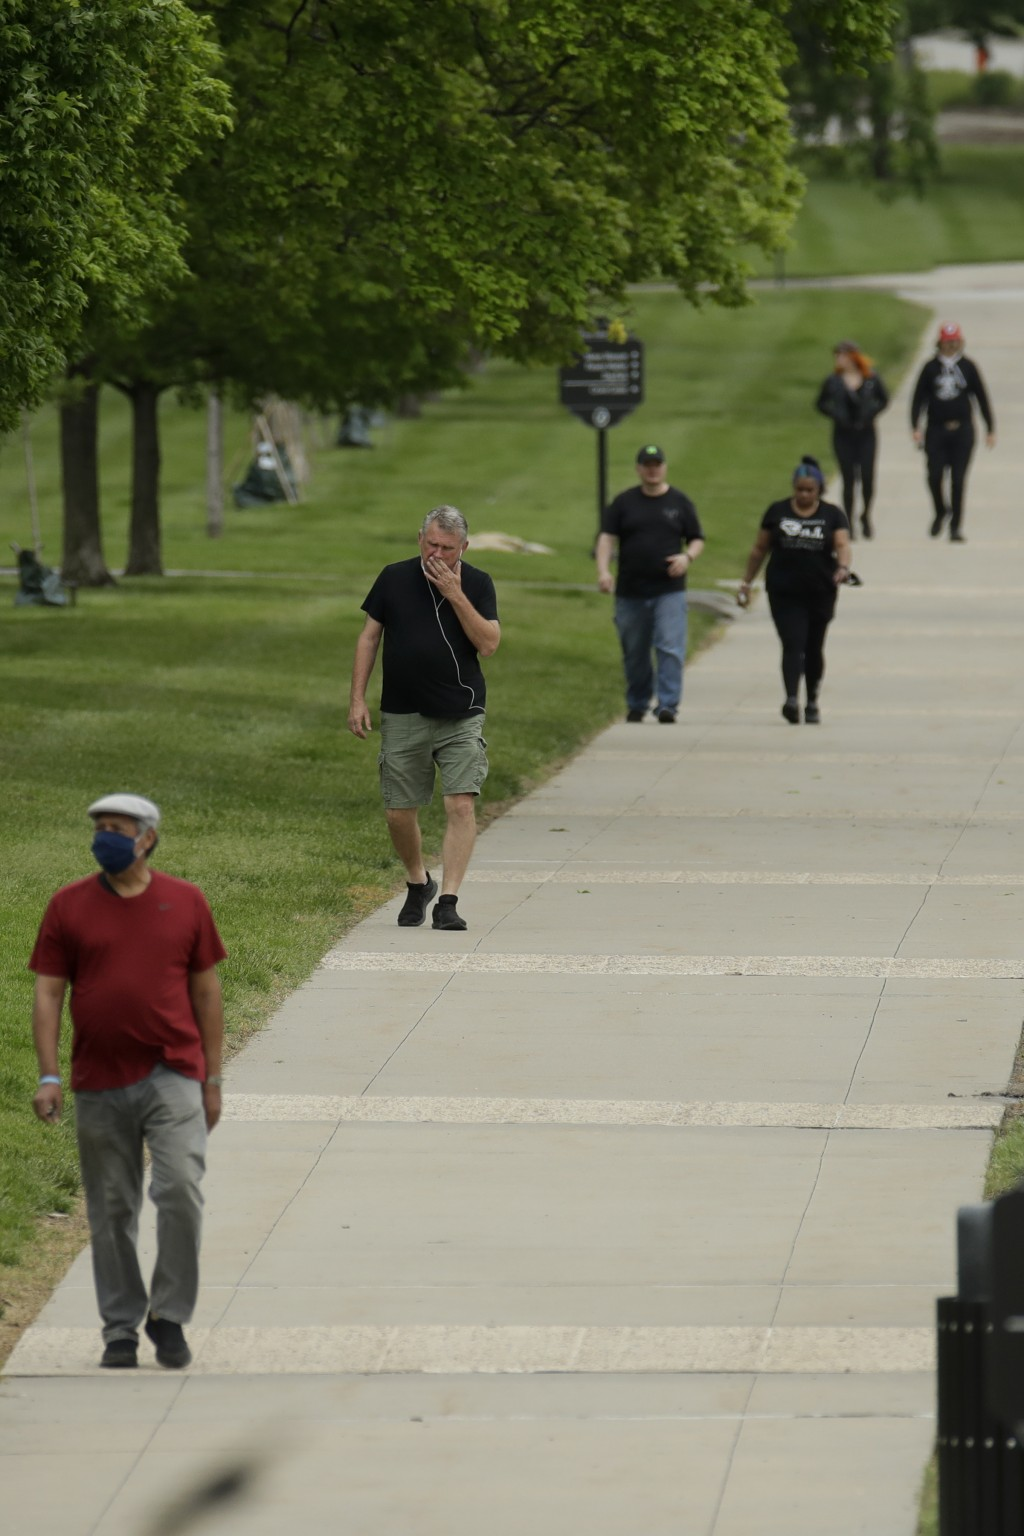 People walk in a park Friday, May 15, 2020 in Kansas City, Mo. The city lifted stay-at-home orders meant to stem the spread of coronavirus today allow...